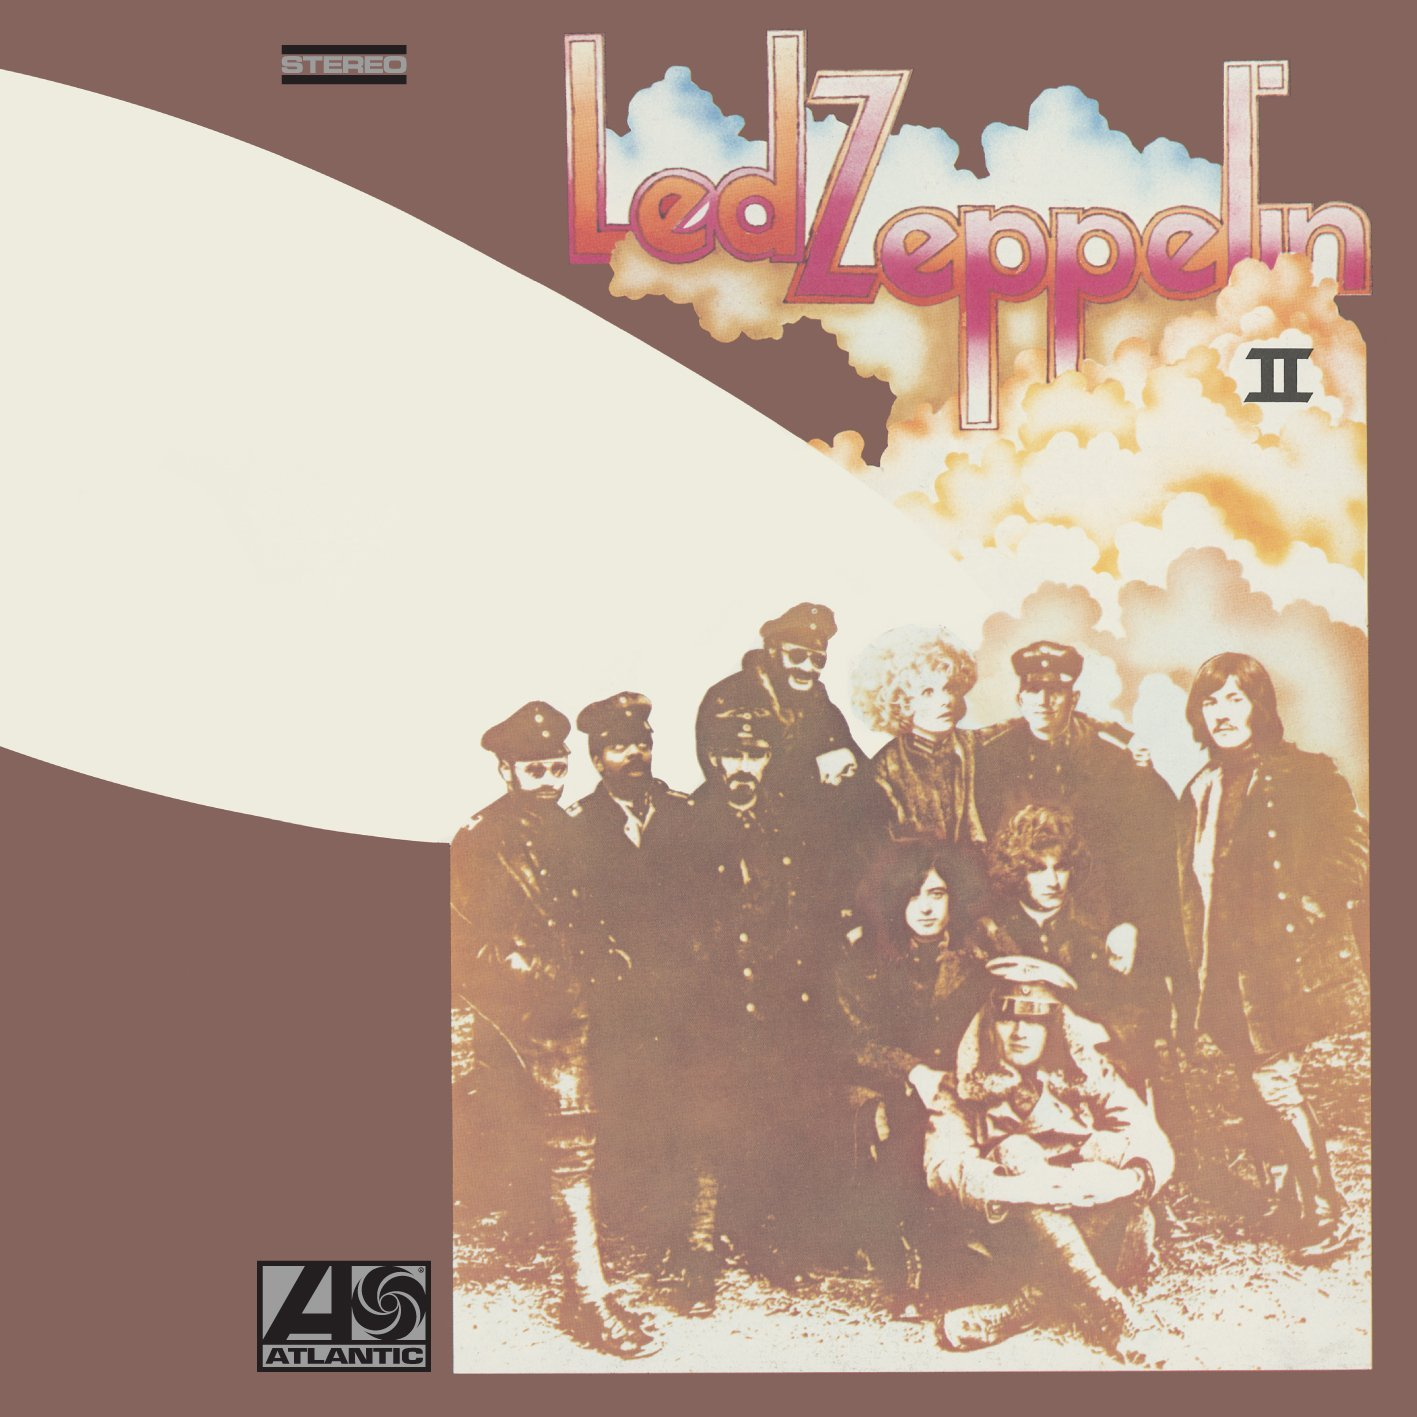 Led Zeppelin 2014 reissues / Led Zeppelin II standard vinyl